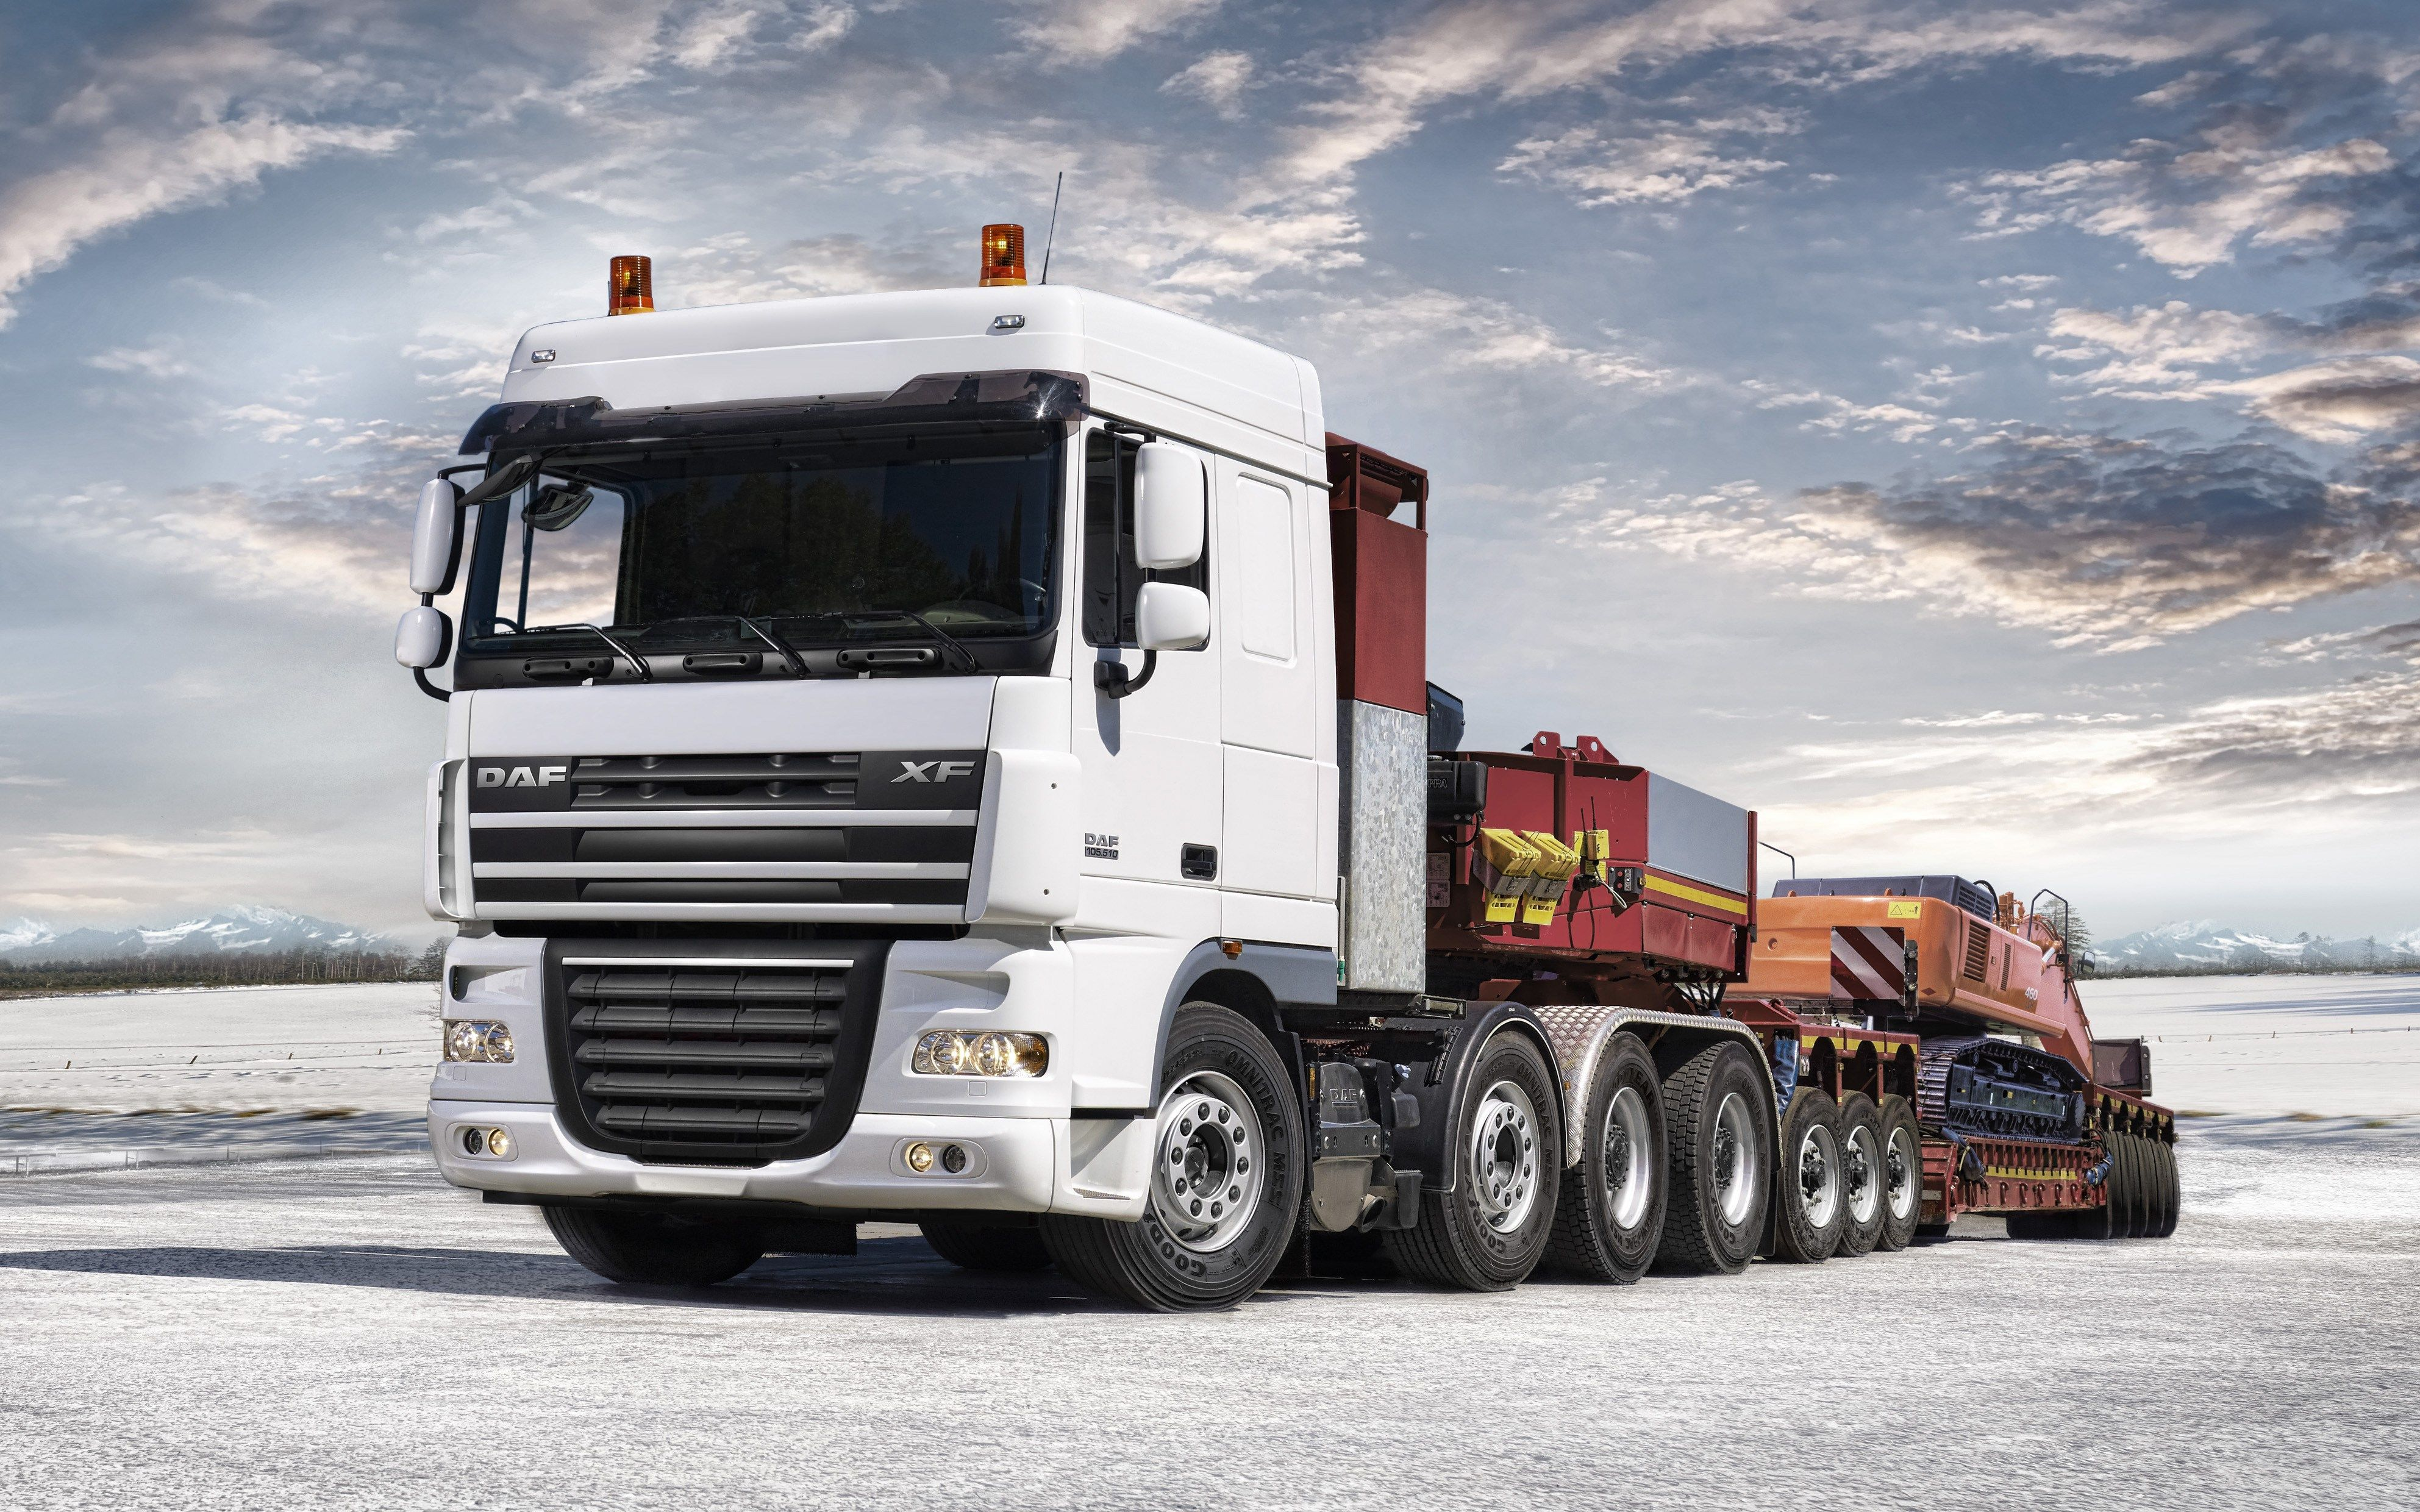 3969x2480px daf wallpaper for desktop background by Woodruff Sinclair